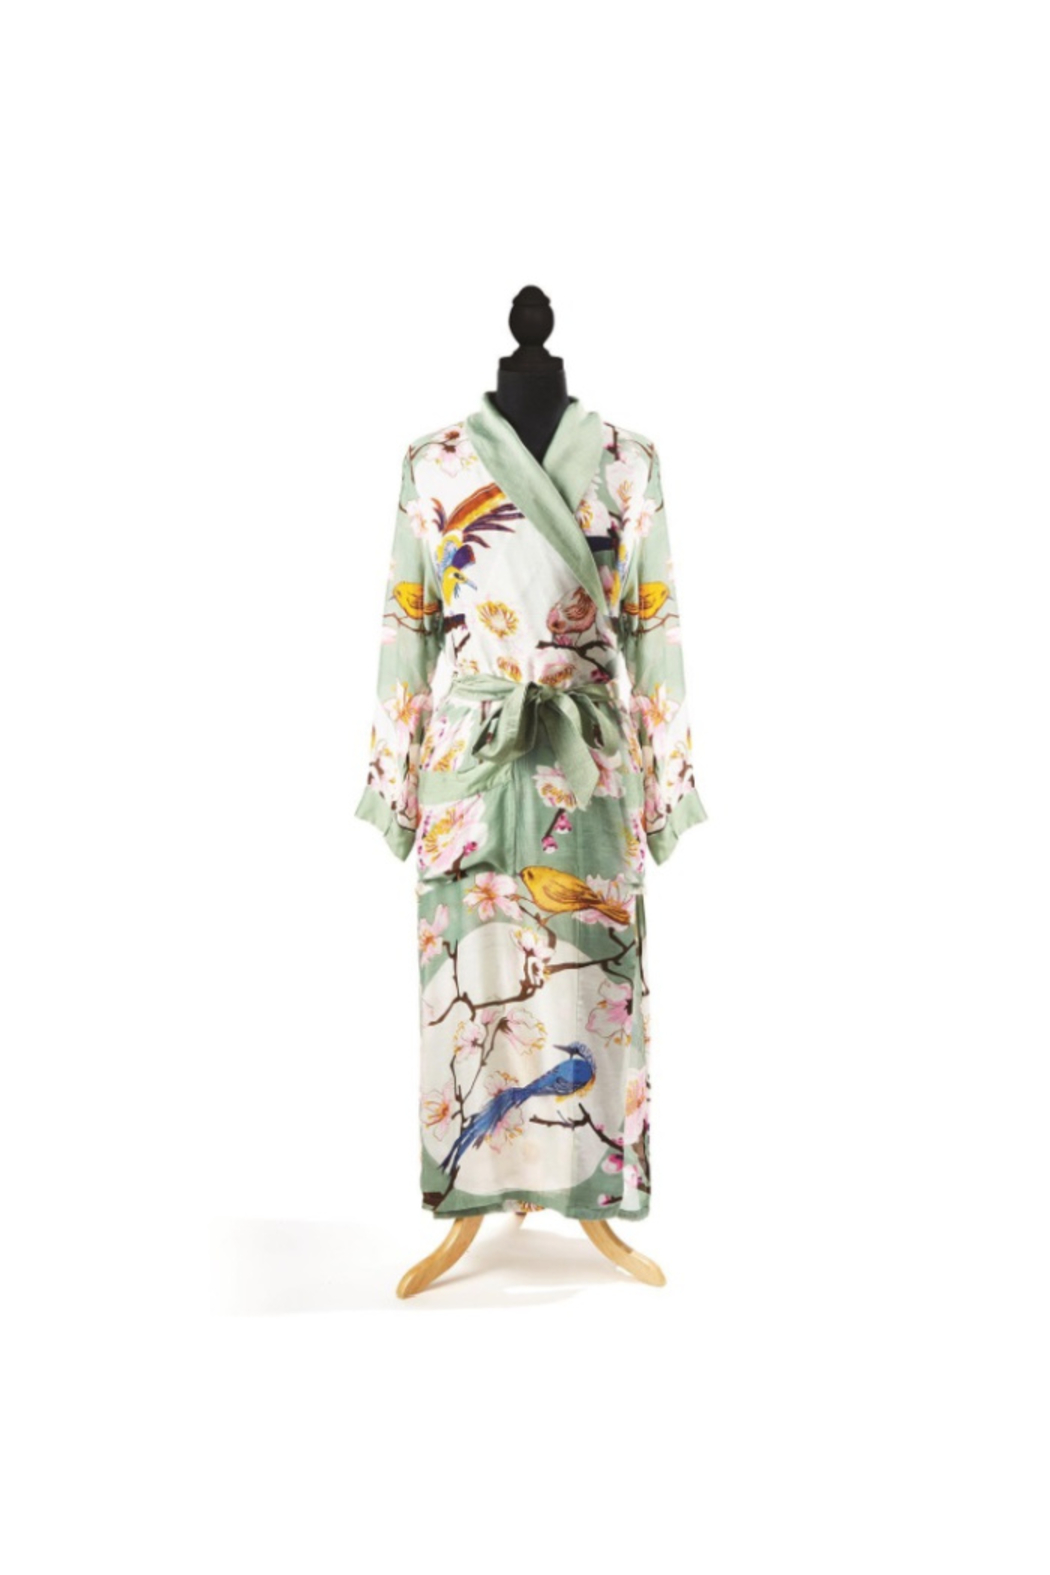 The Birds Nest LADIES ROBE - Main Image